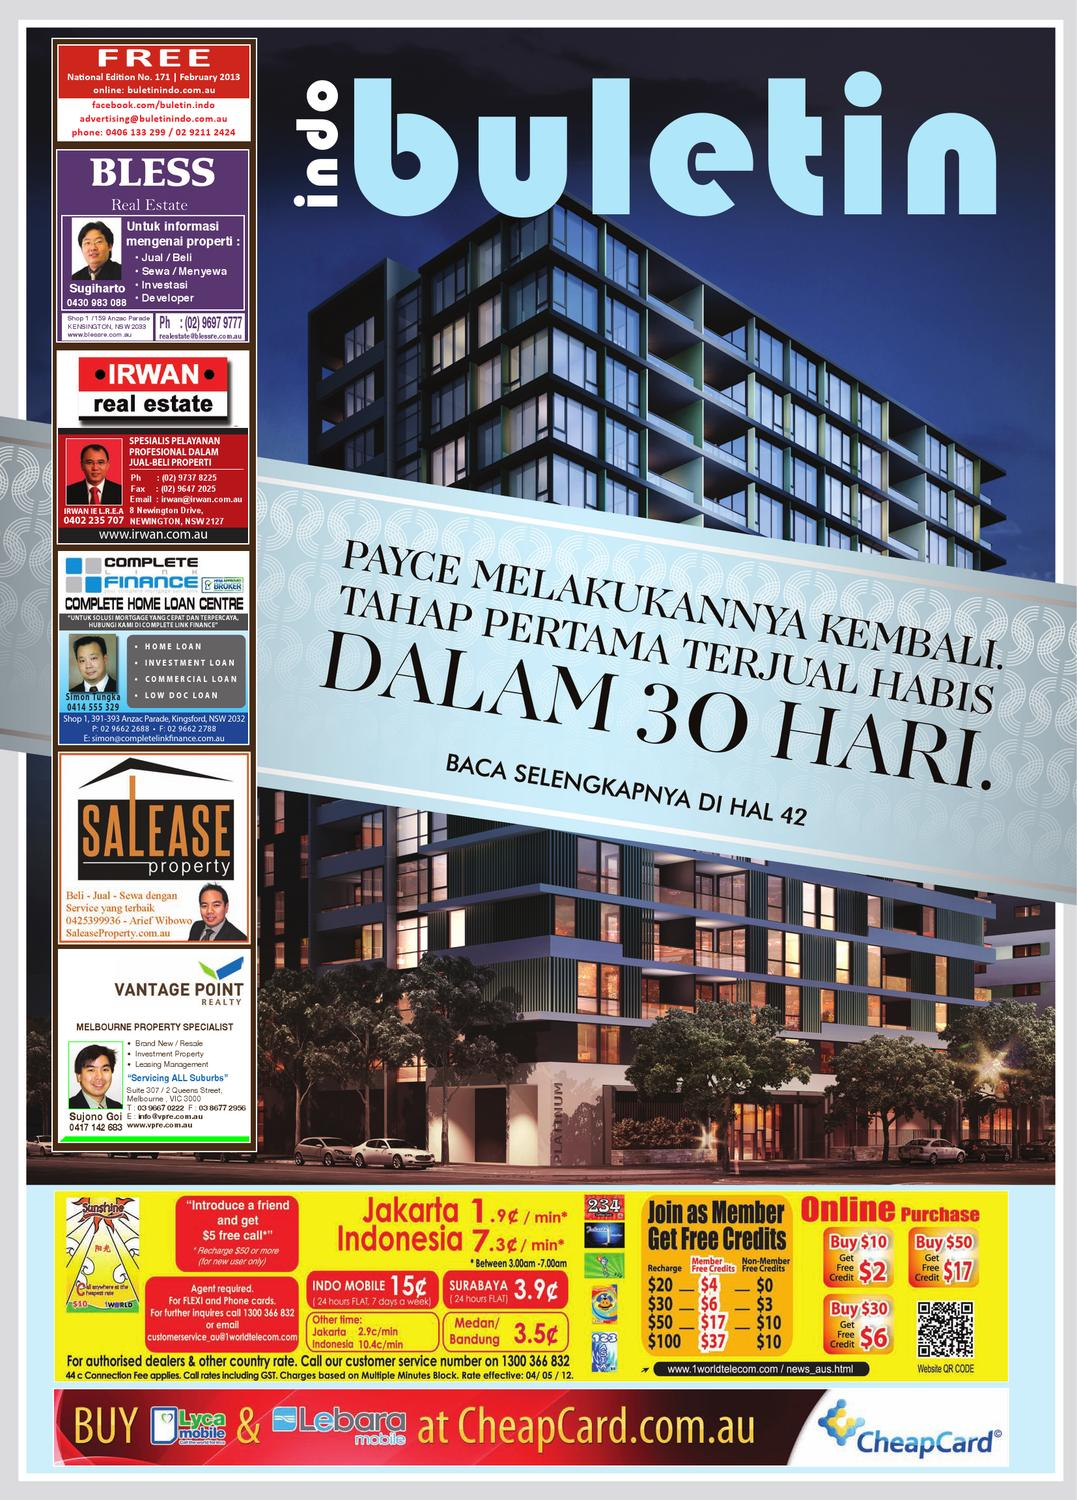 Buletin Indo February 2013 by Buletin Indo - issuu 4c6af5fe0f